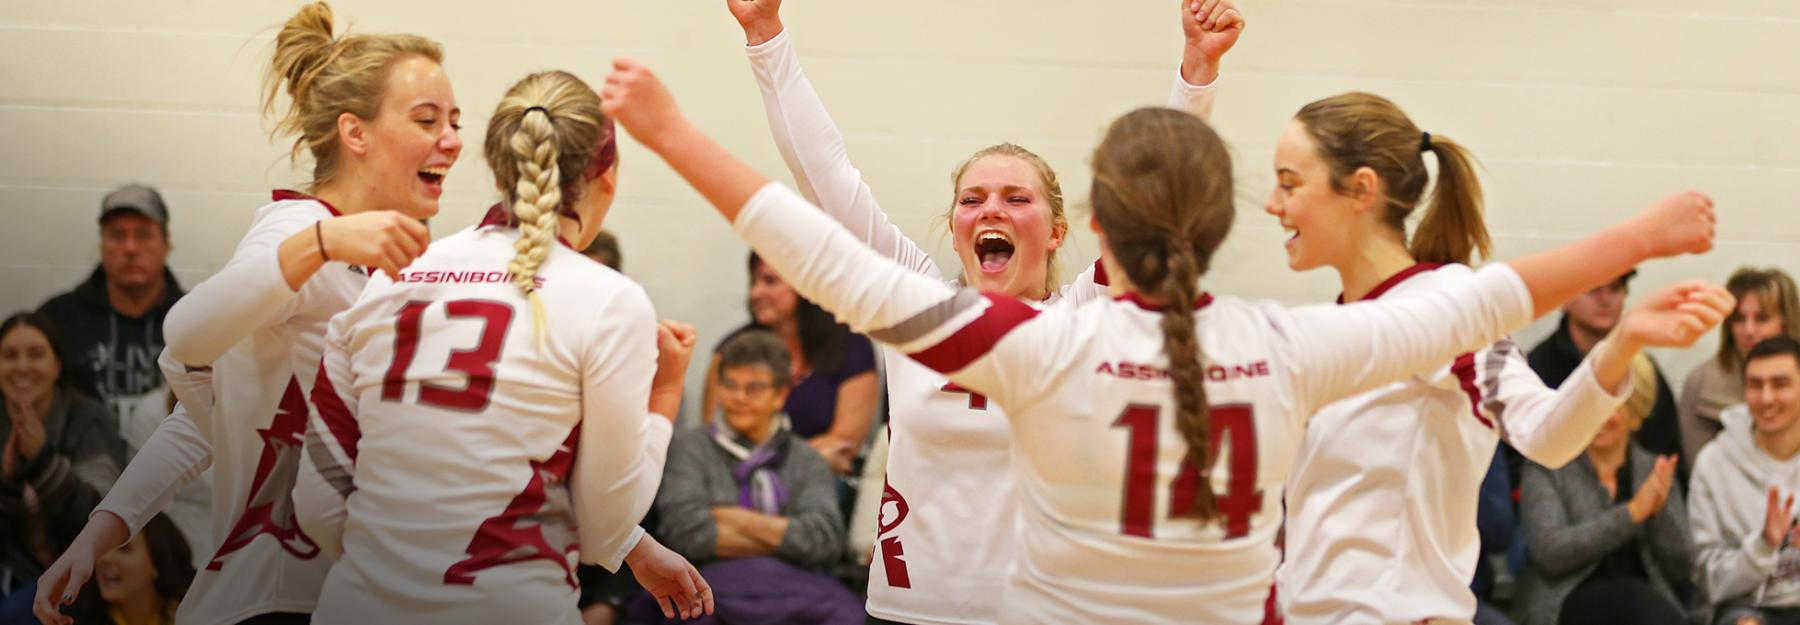 Women's volleyball team celebrates on the court